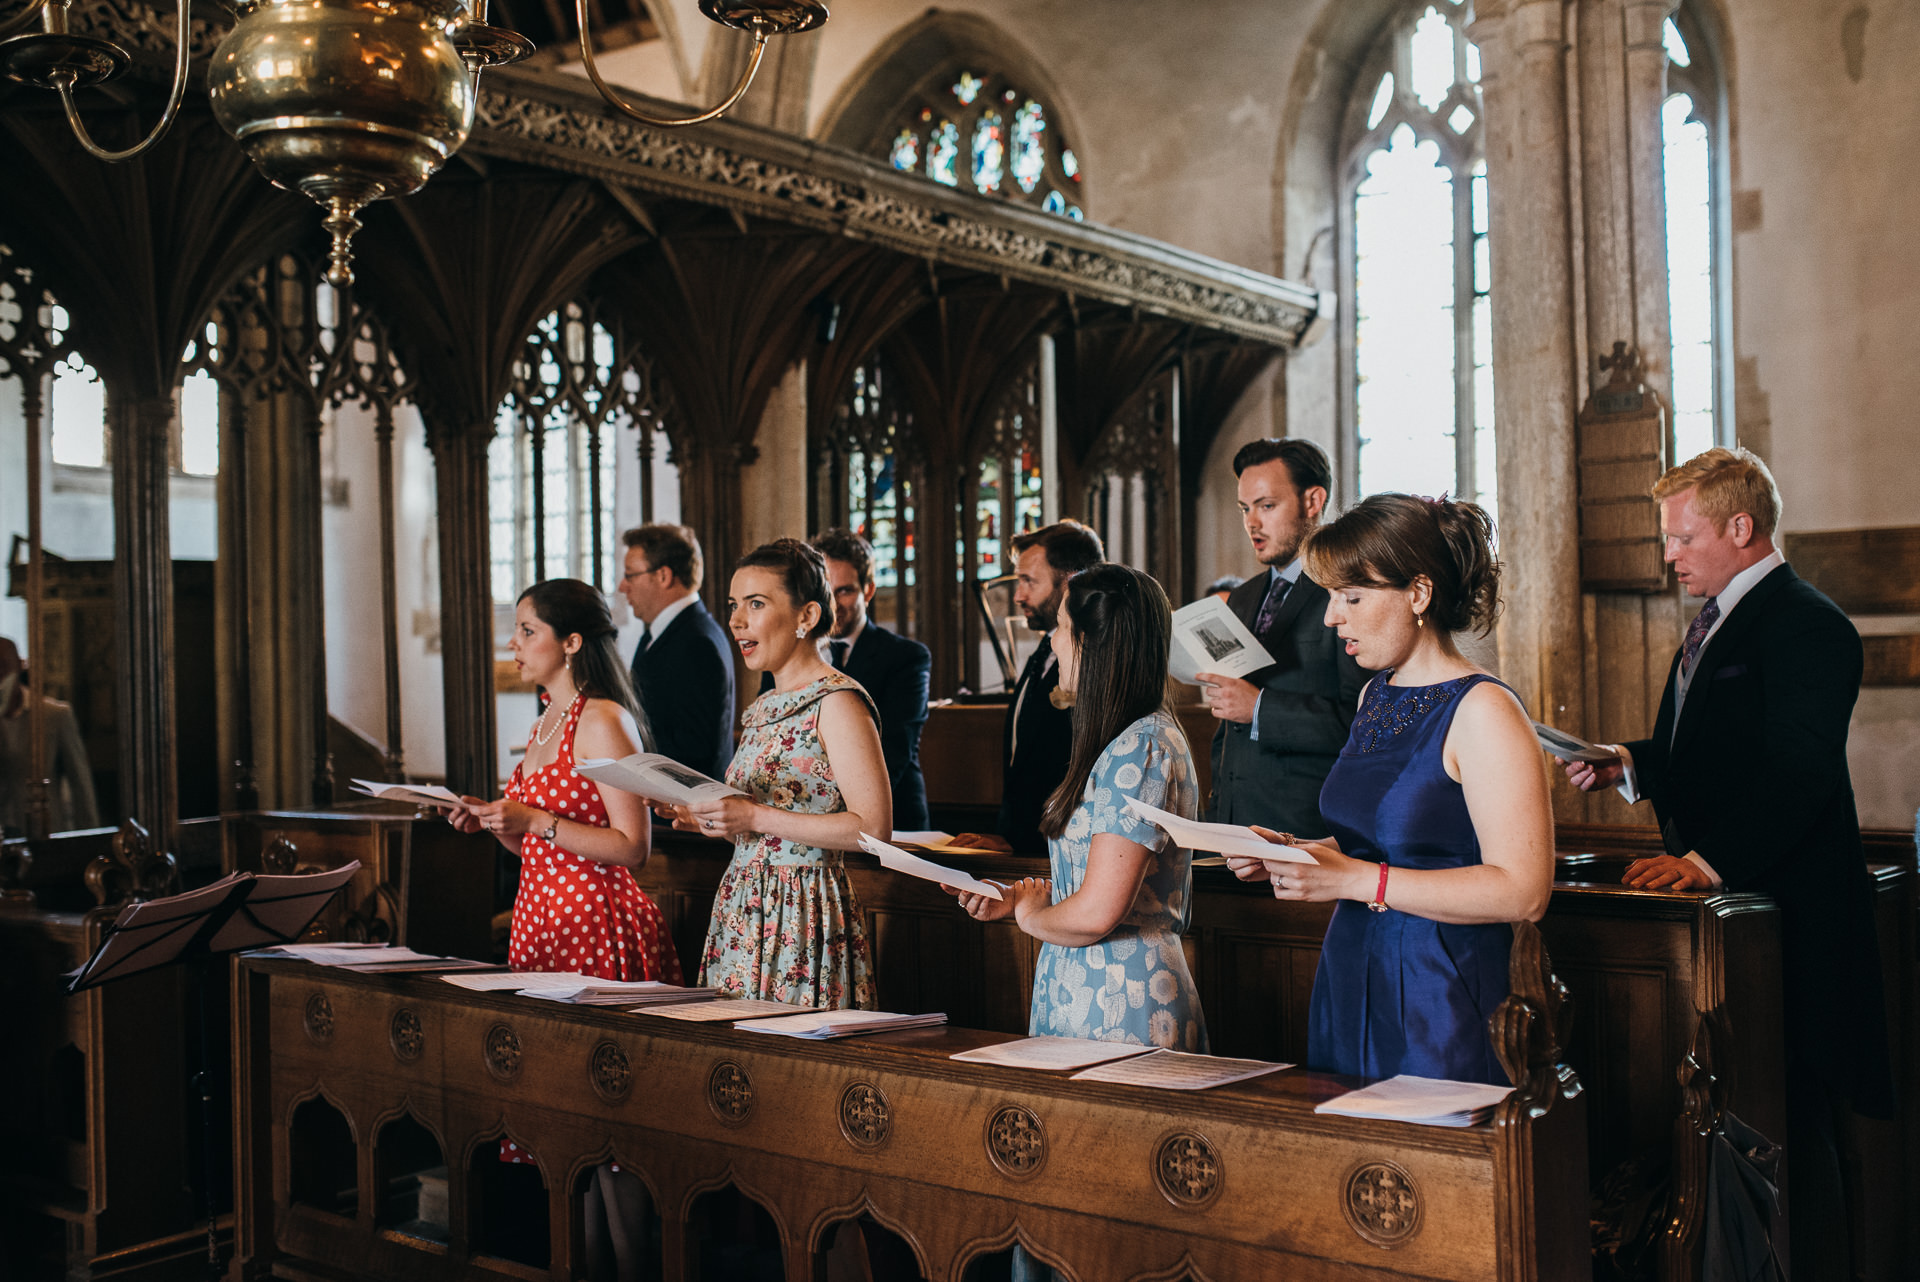 Dunster church wedding choir